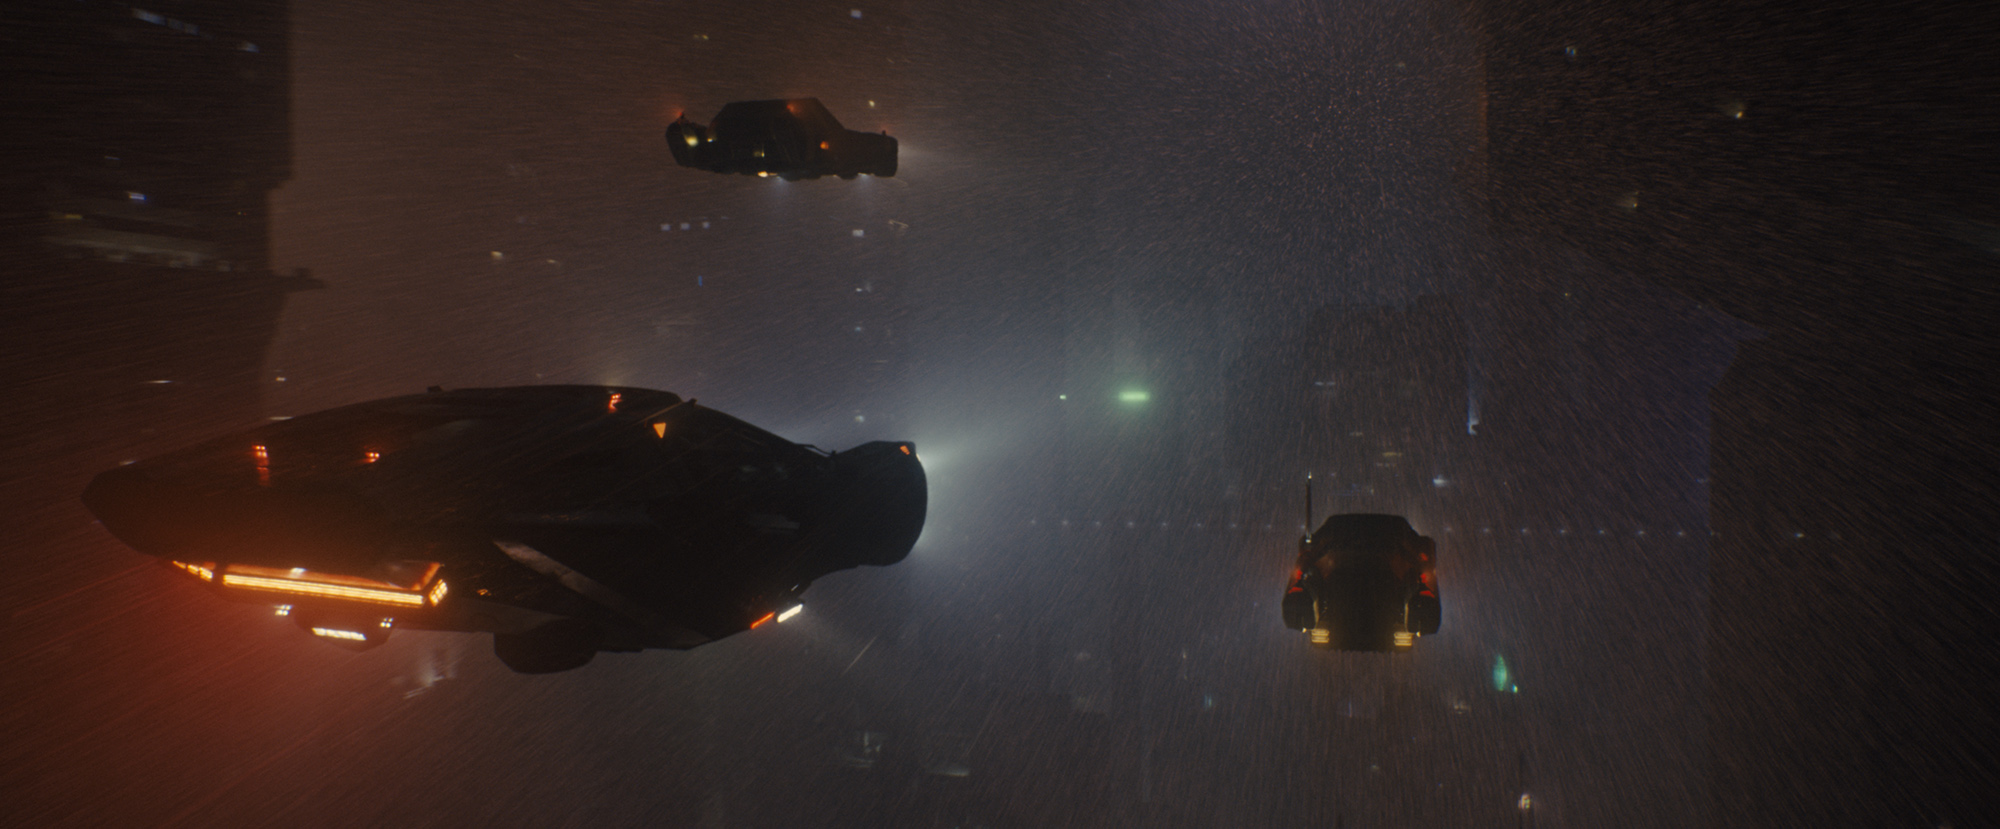 Blade Runner   Scene With Flying Cars